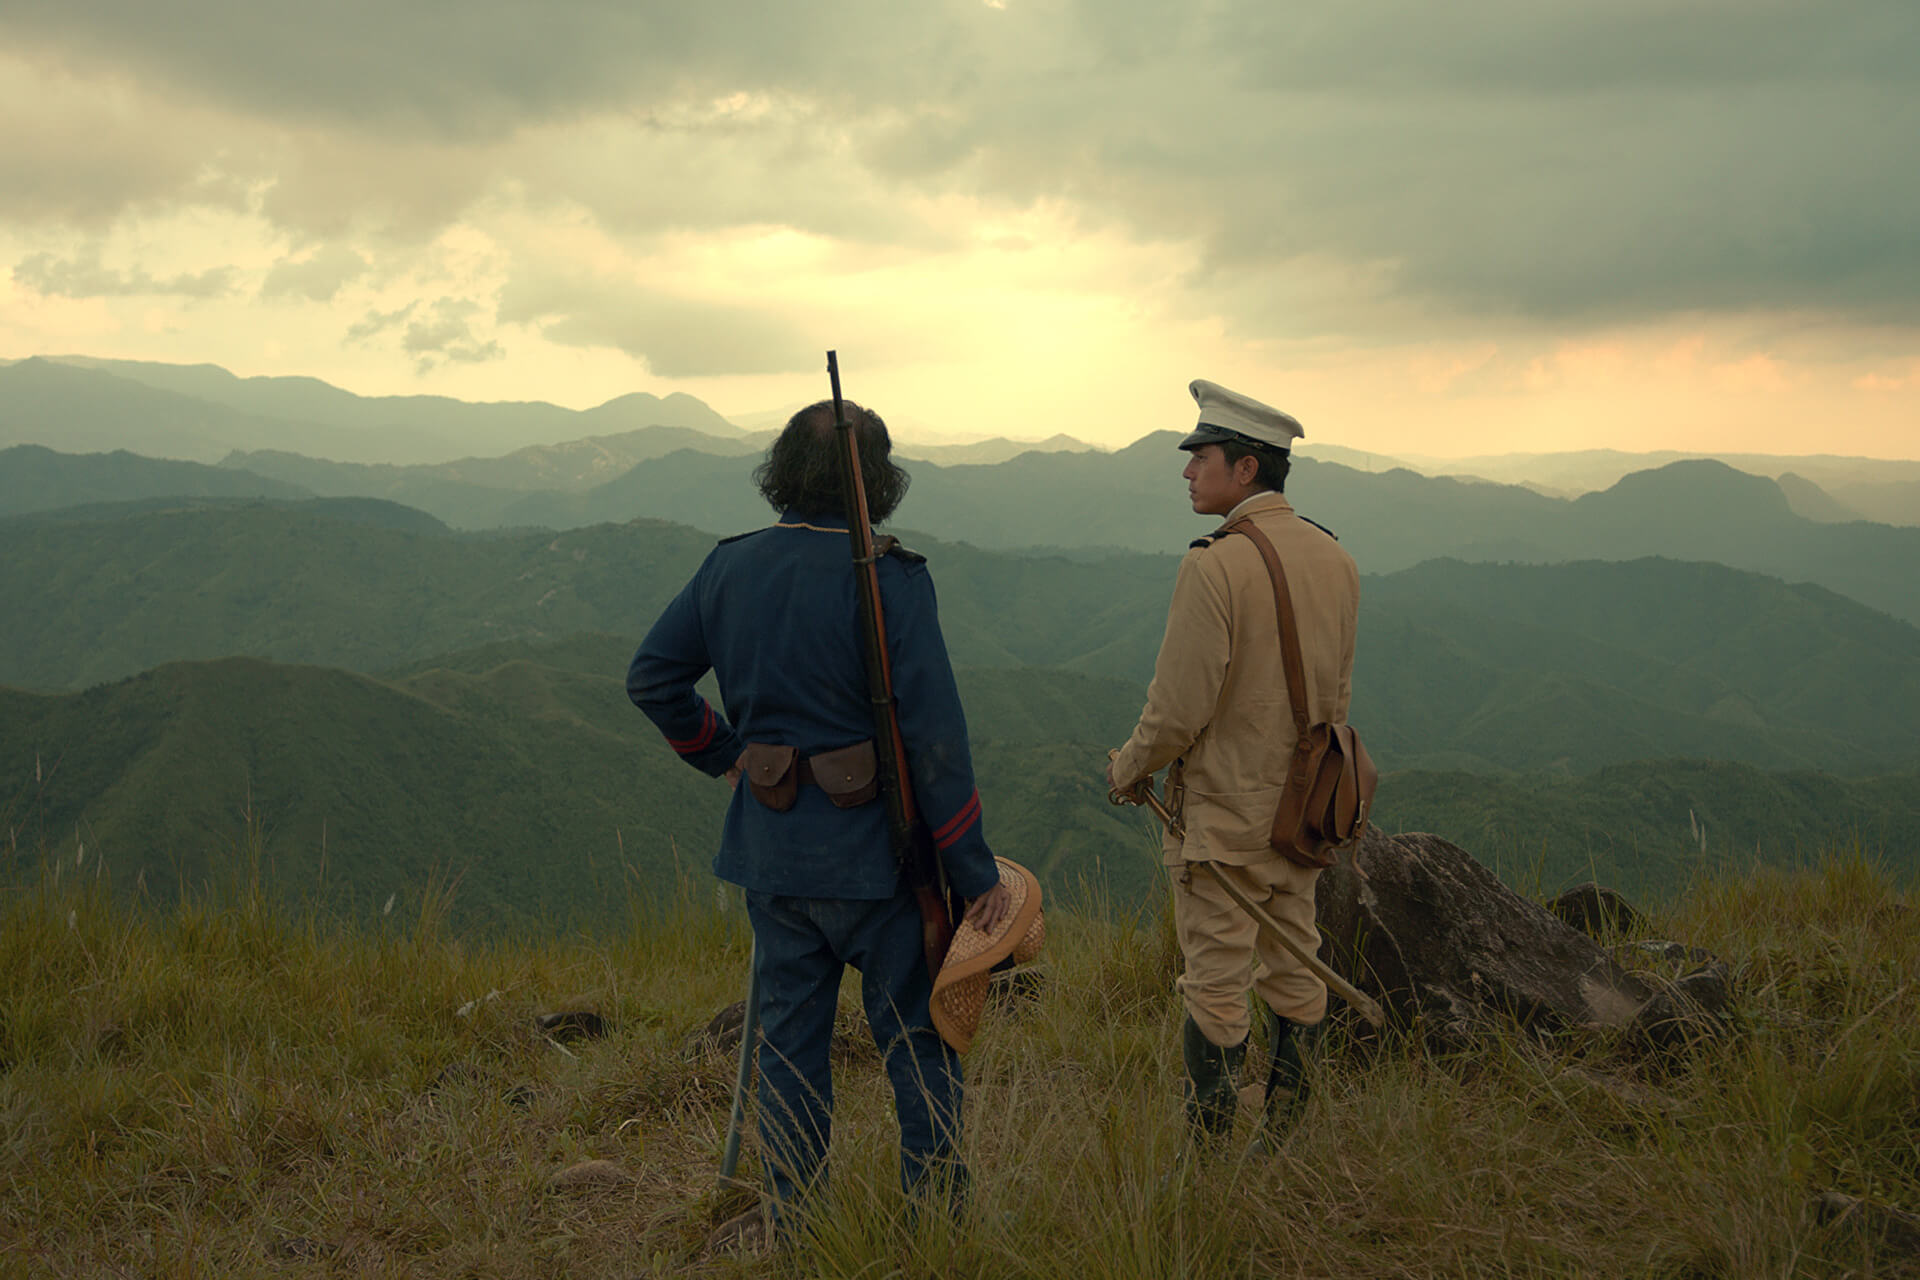 Goyo and his commander overlooking Mt. Balagbag in Rizal.